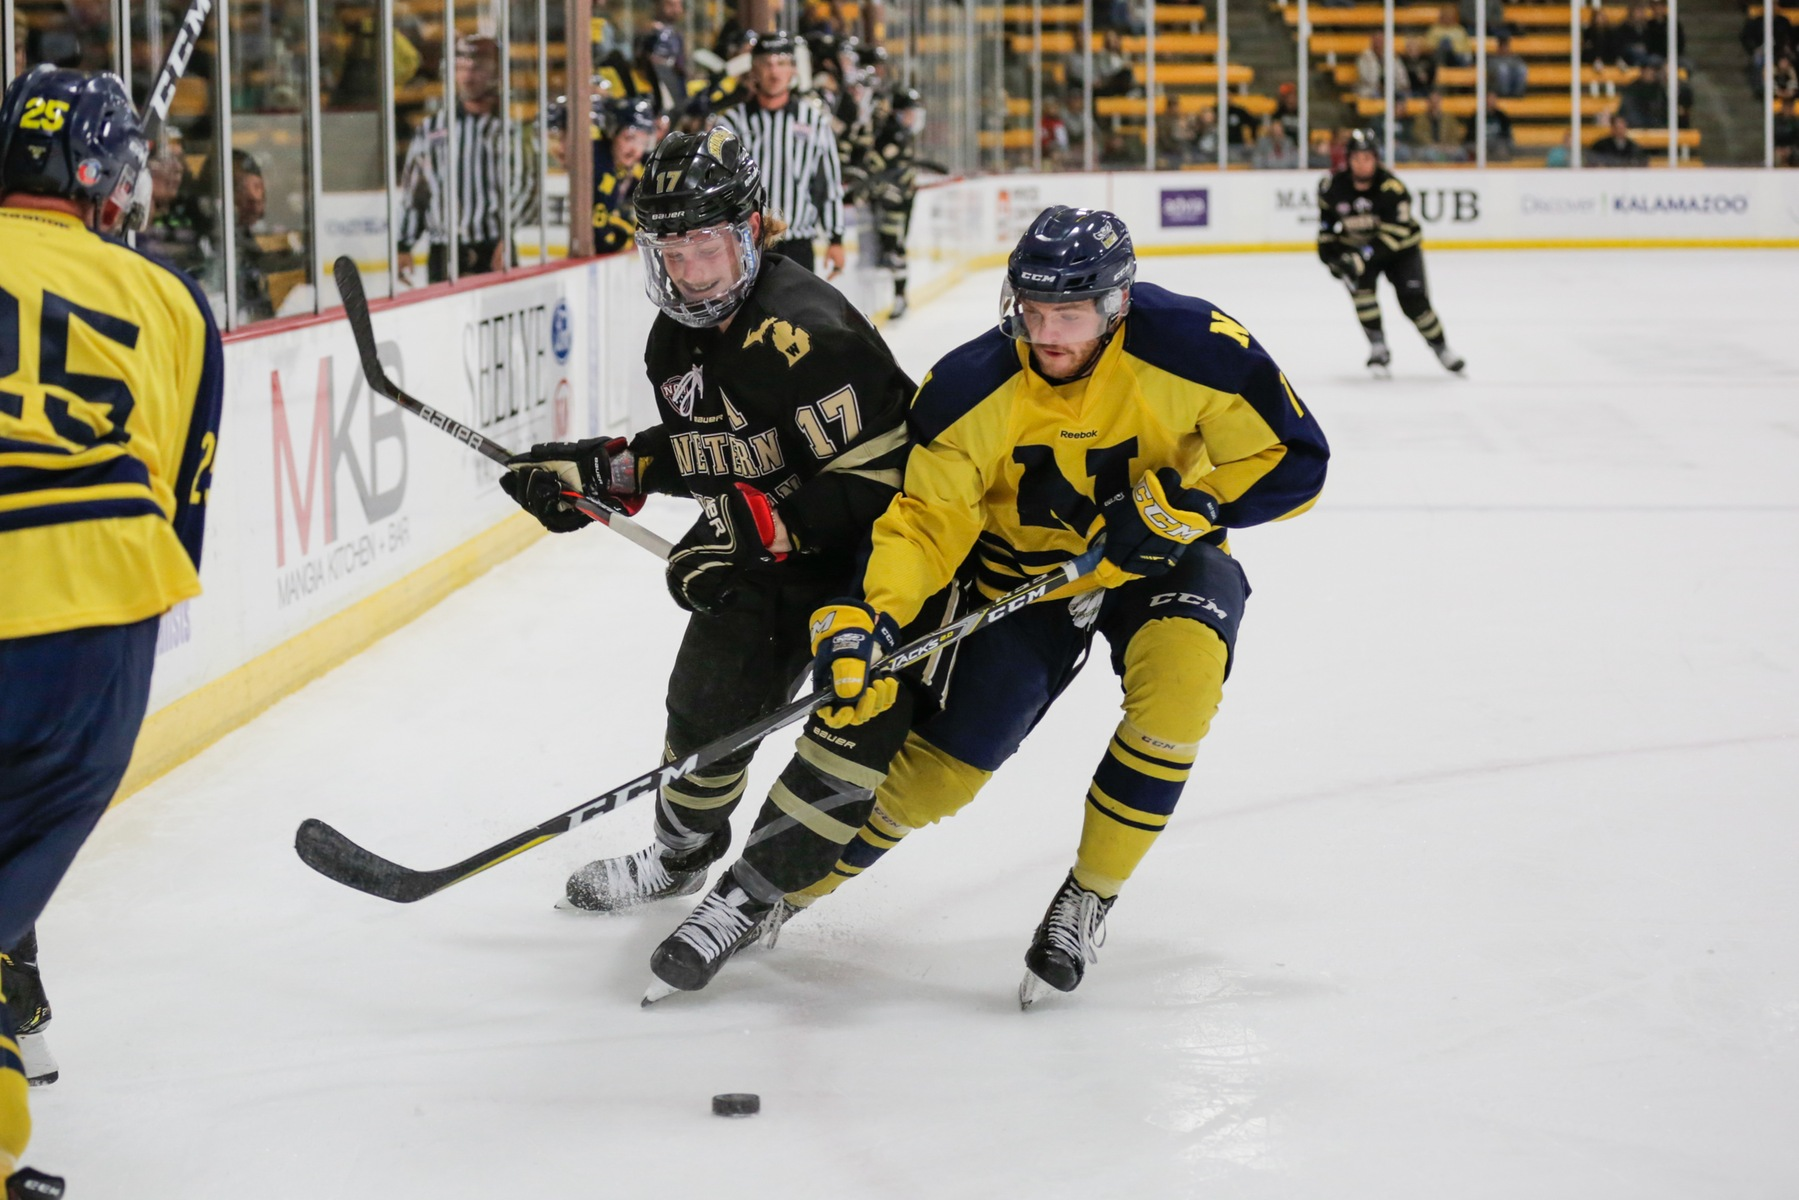 OOKS FALL TO STRONG WESTERN MICHIGAN TEAM 6-1